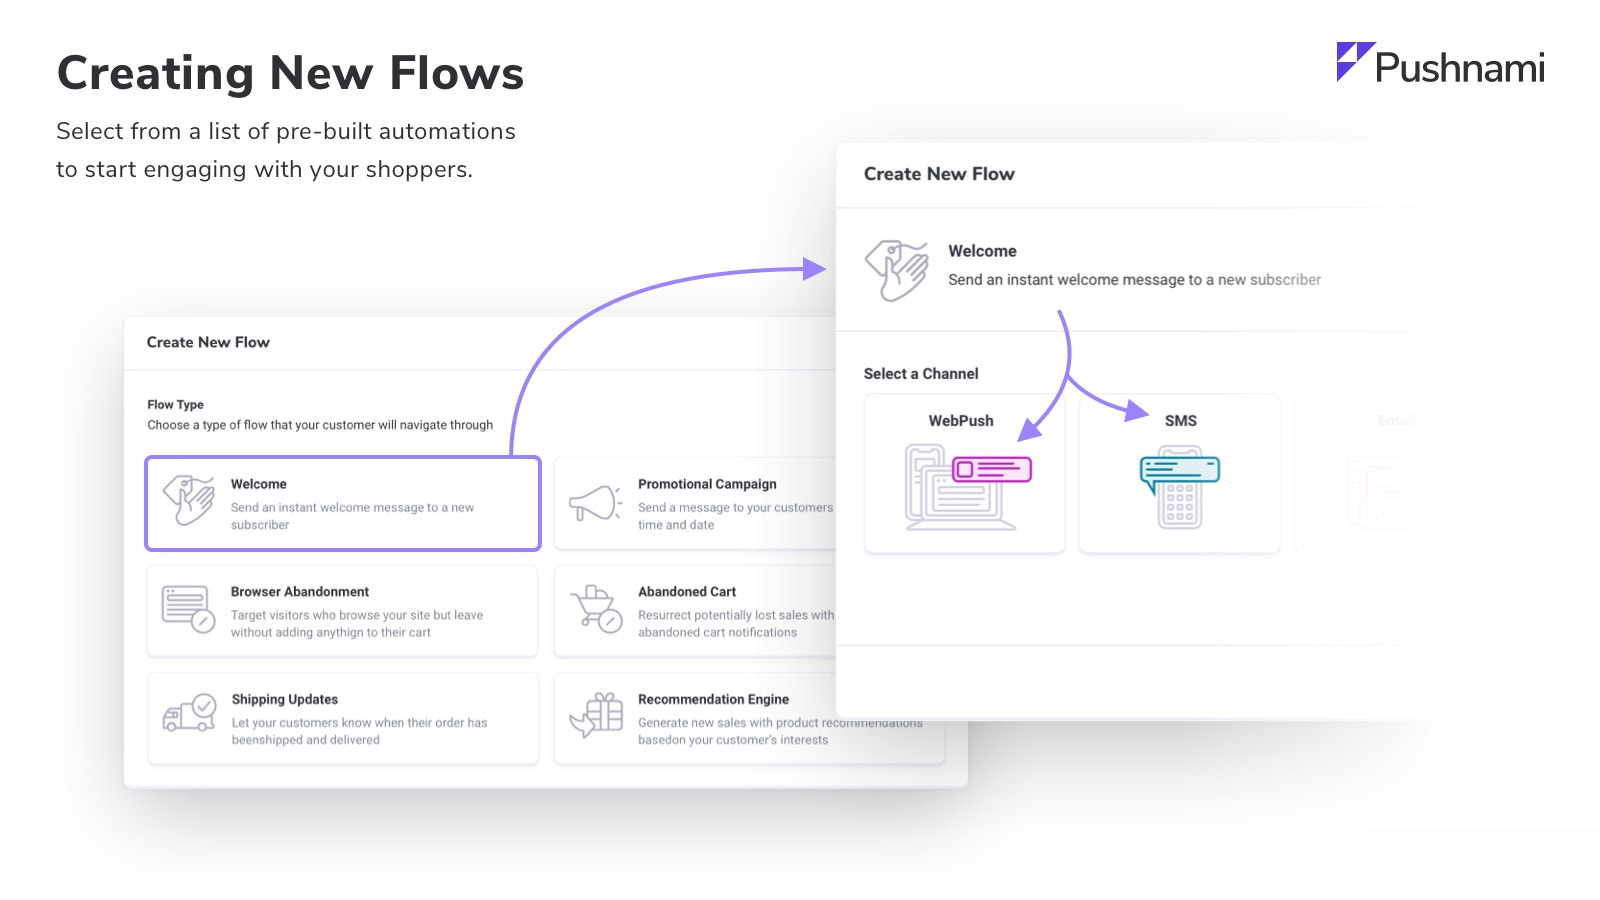 Select from pre-built automations to engage with your shoppers.